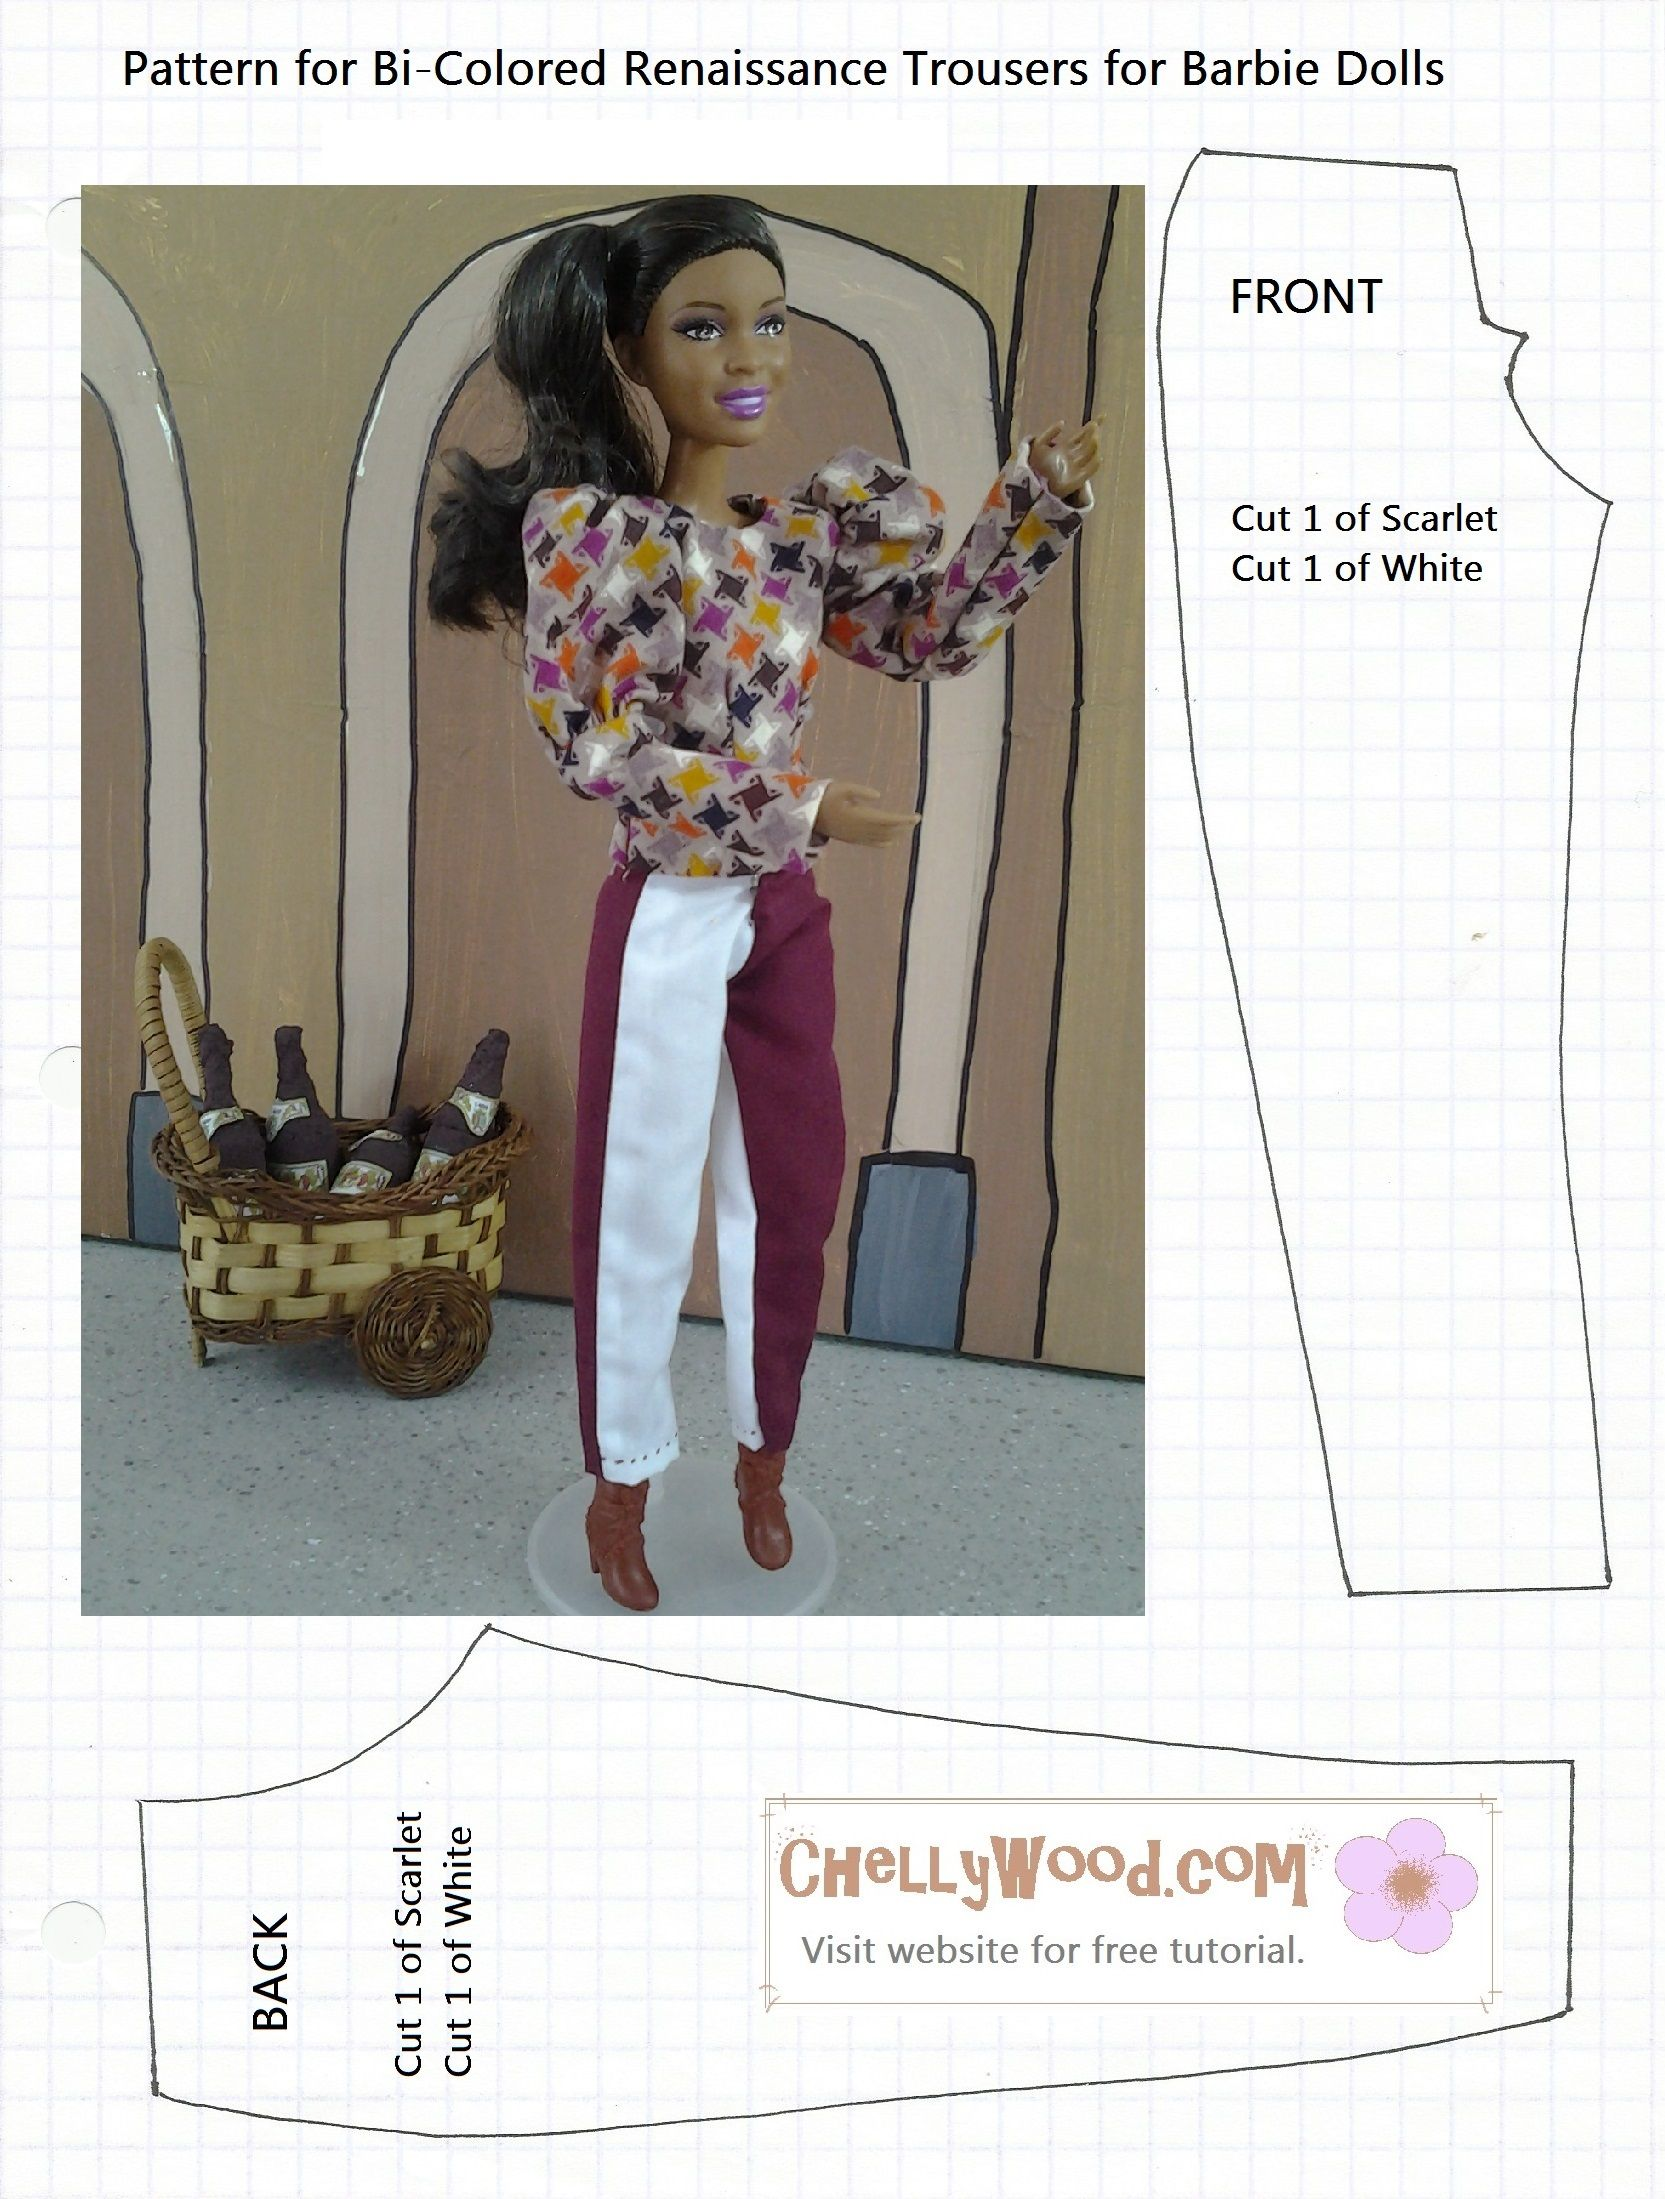 Free printable pattern for barbie trousers pants from chellywood free printable pattern for barbie trousers pants from chellywood visit website for video barbie sewing patternsdoll clothes bankloansurffo Choice Image